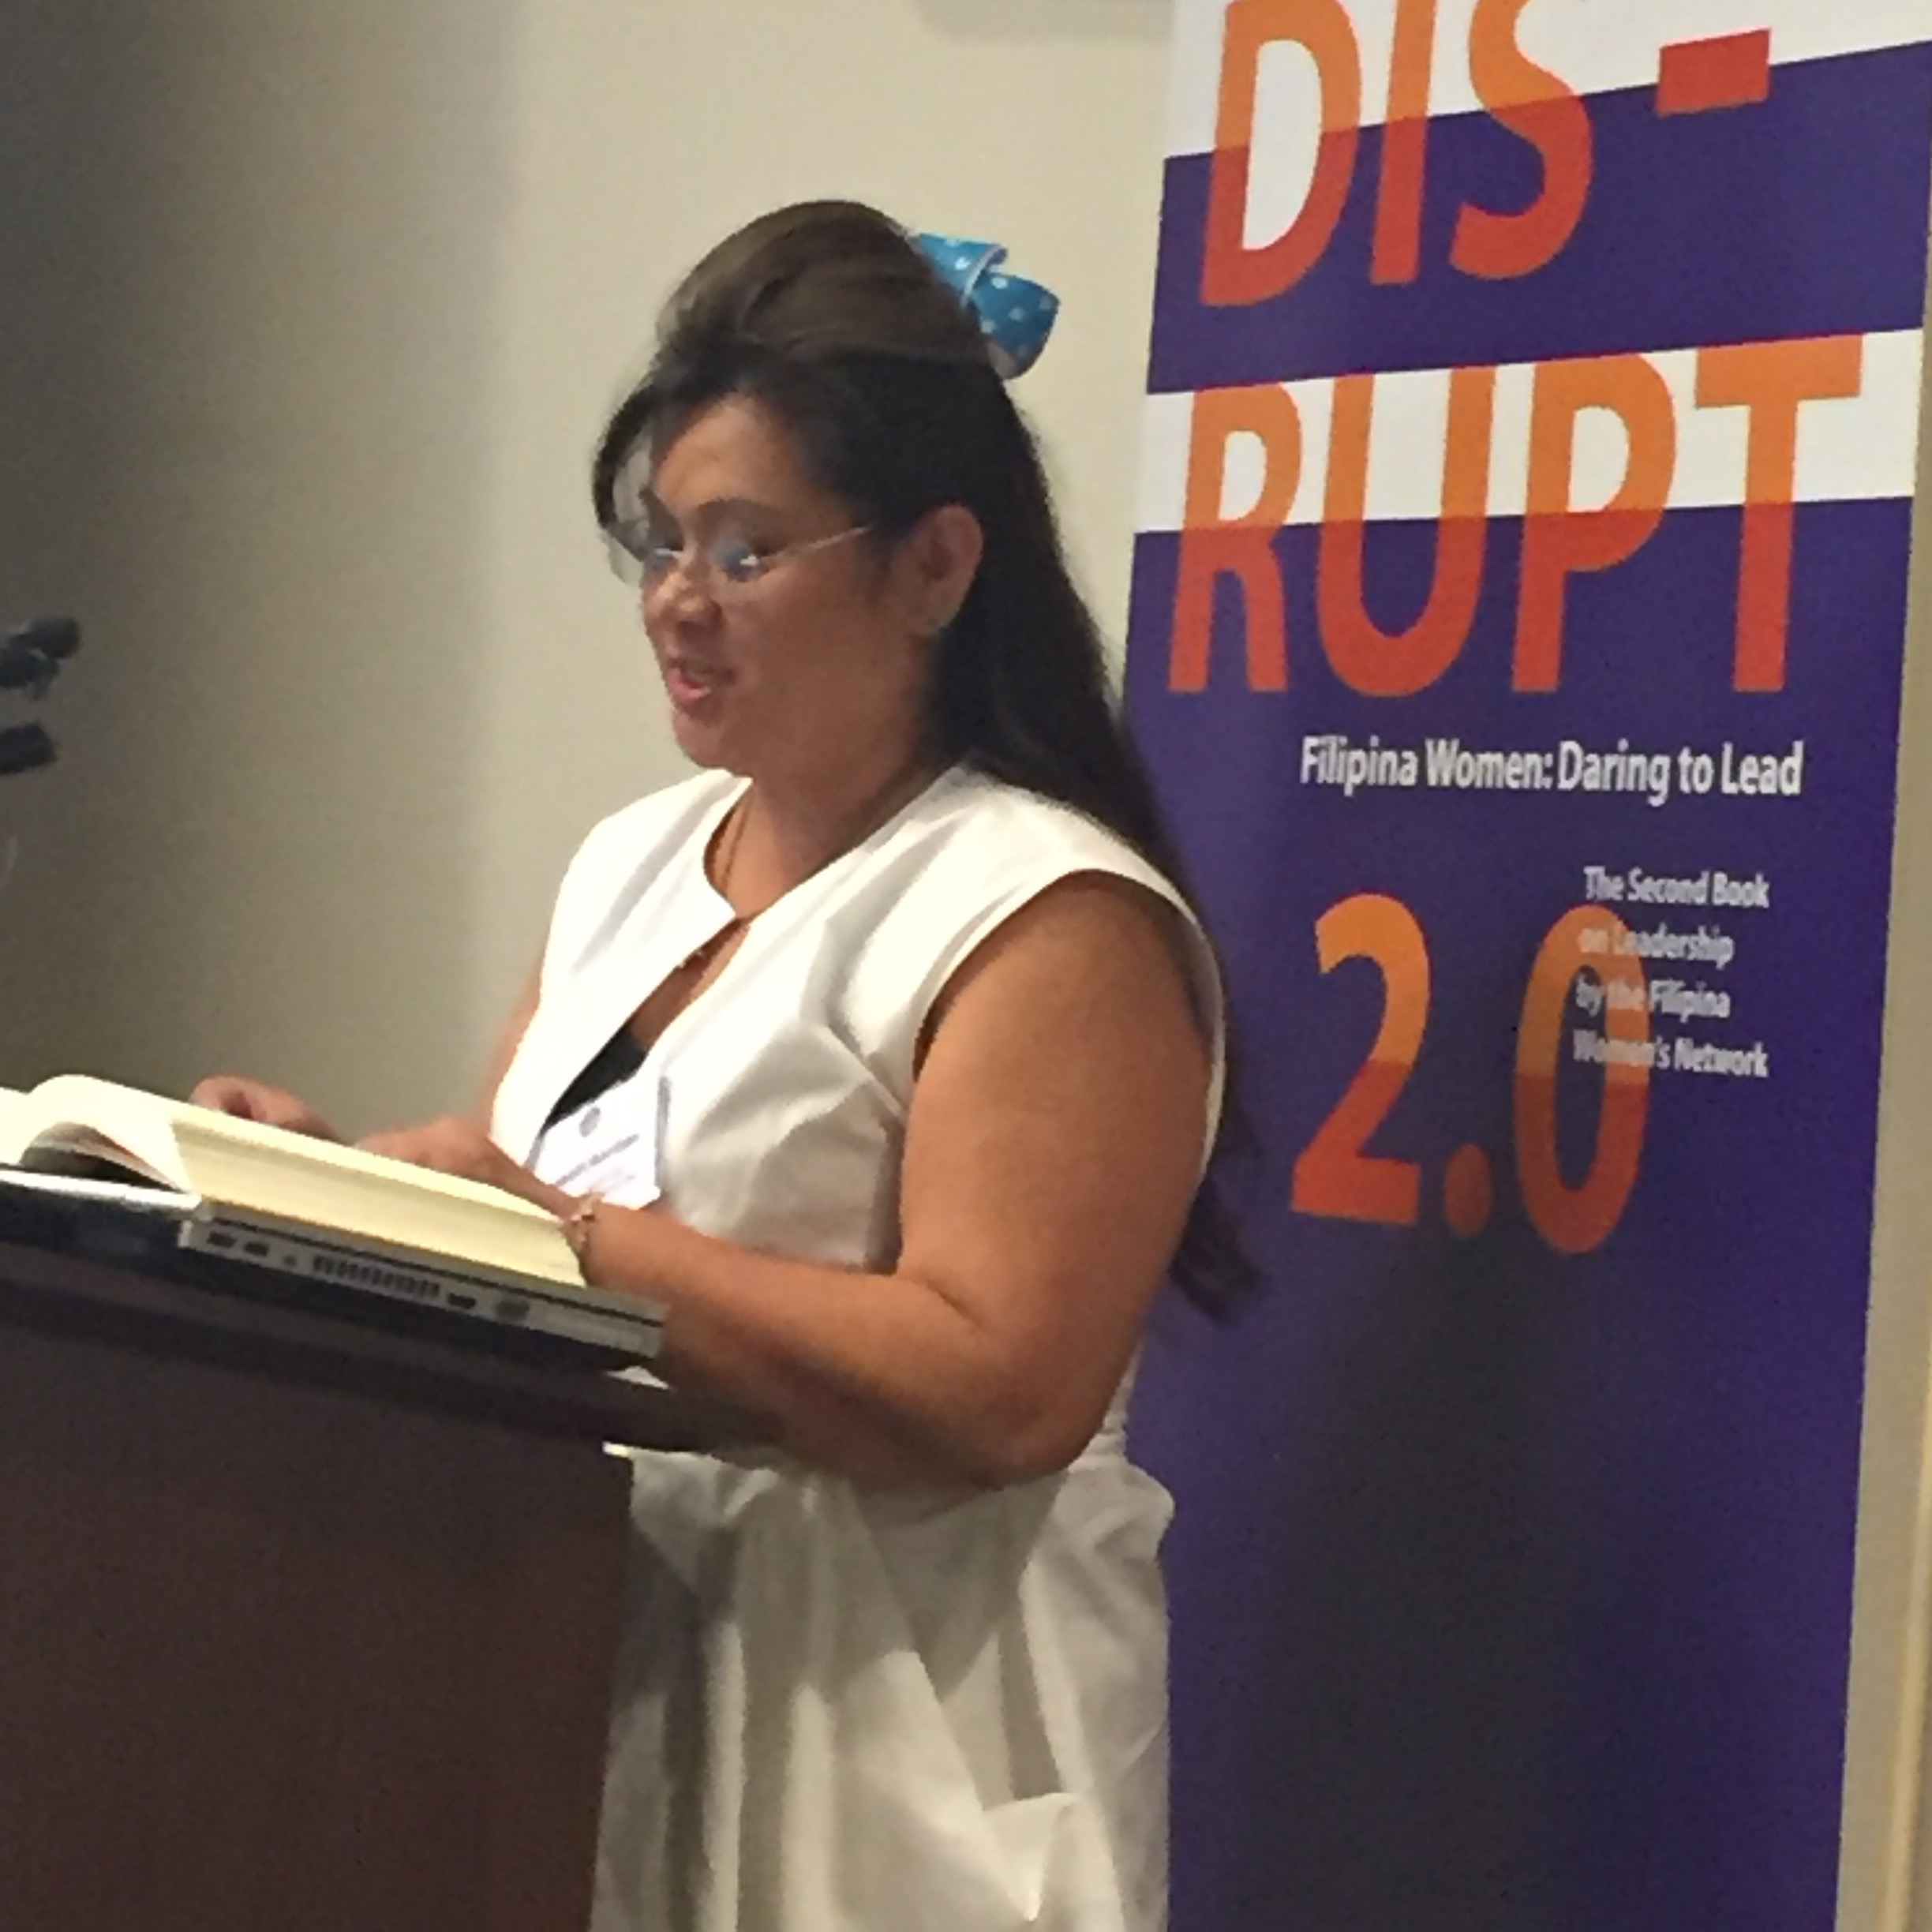 """Elizabeth Bautista (Global FWN100™ '15) reads from her chapter """"Synergistic Change"""" at DISRUPTing San Francisco at Charles Schwab on October 6, 2016. Elizabeth recently led a remote book reading at DISRUPTing Houston live from the Grace Hopper Celebration of Women in Computing in Houston Conference via Zoom.us on October 20."""